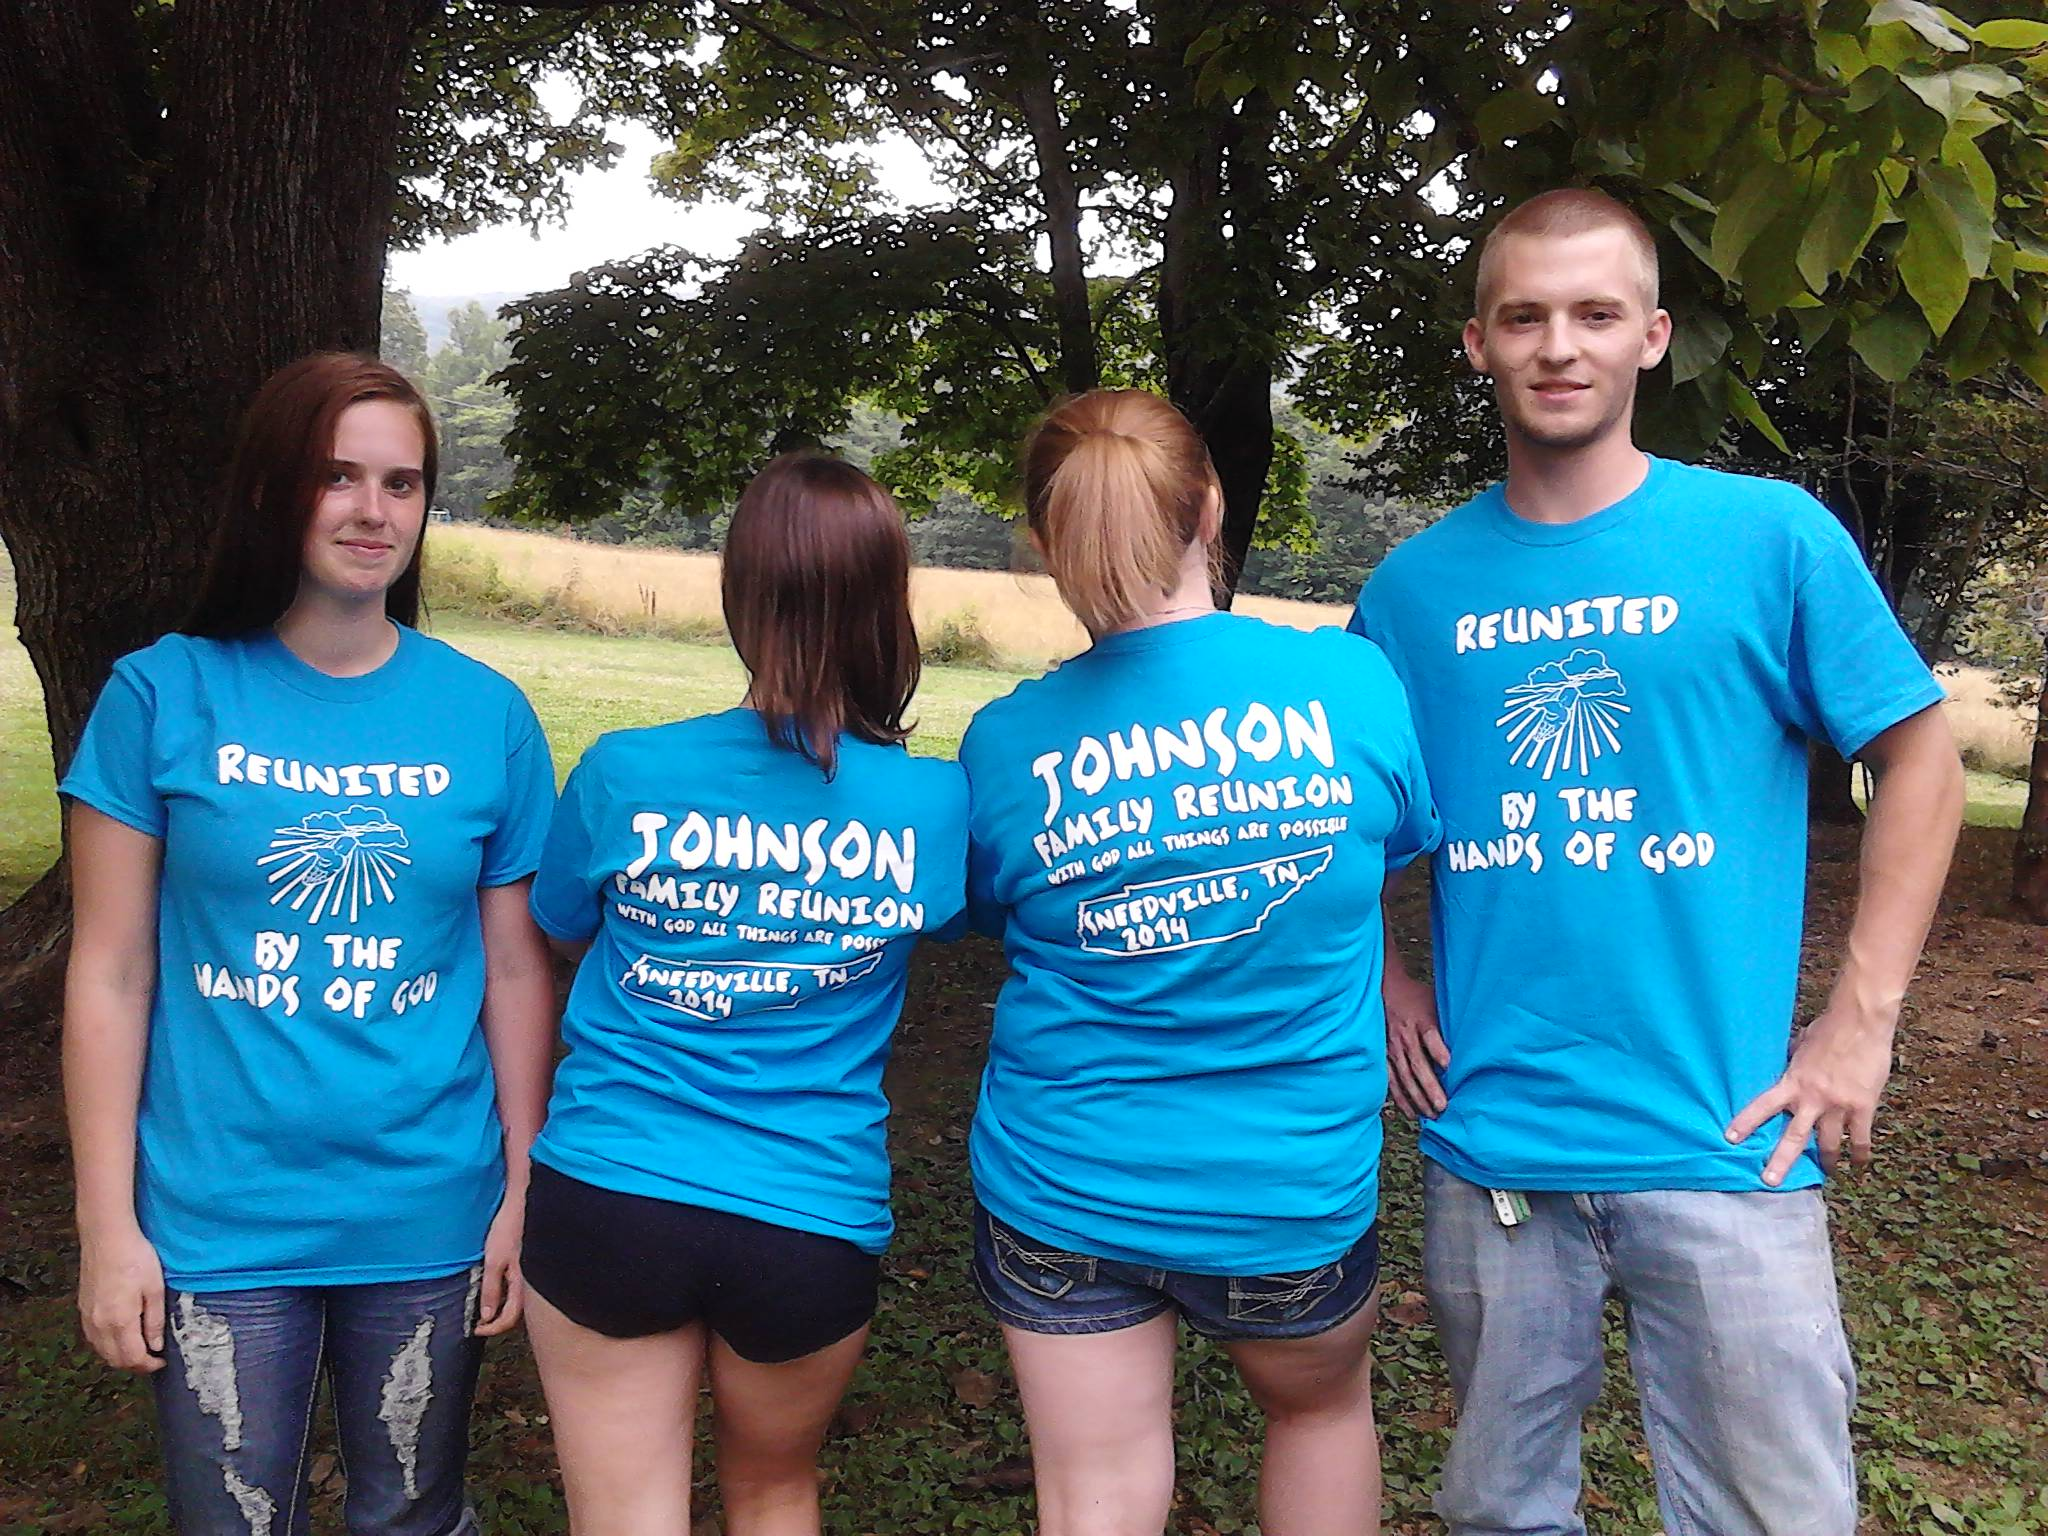 Custom T-Shirts for Johnson Family Reunion - Shirt Design Ideas